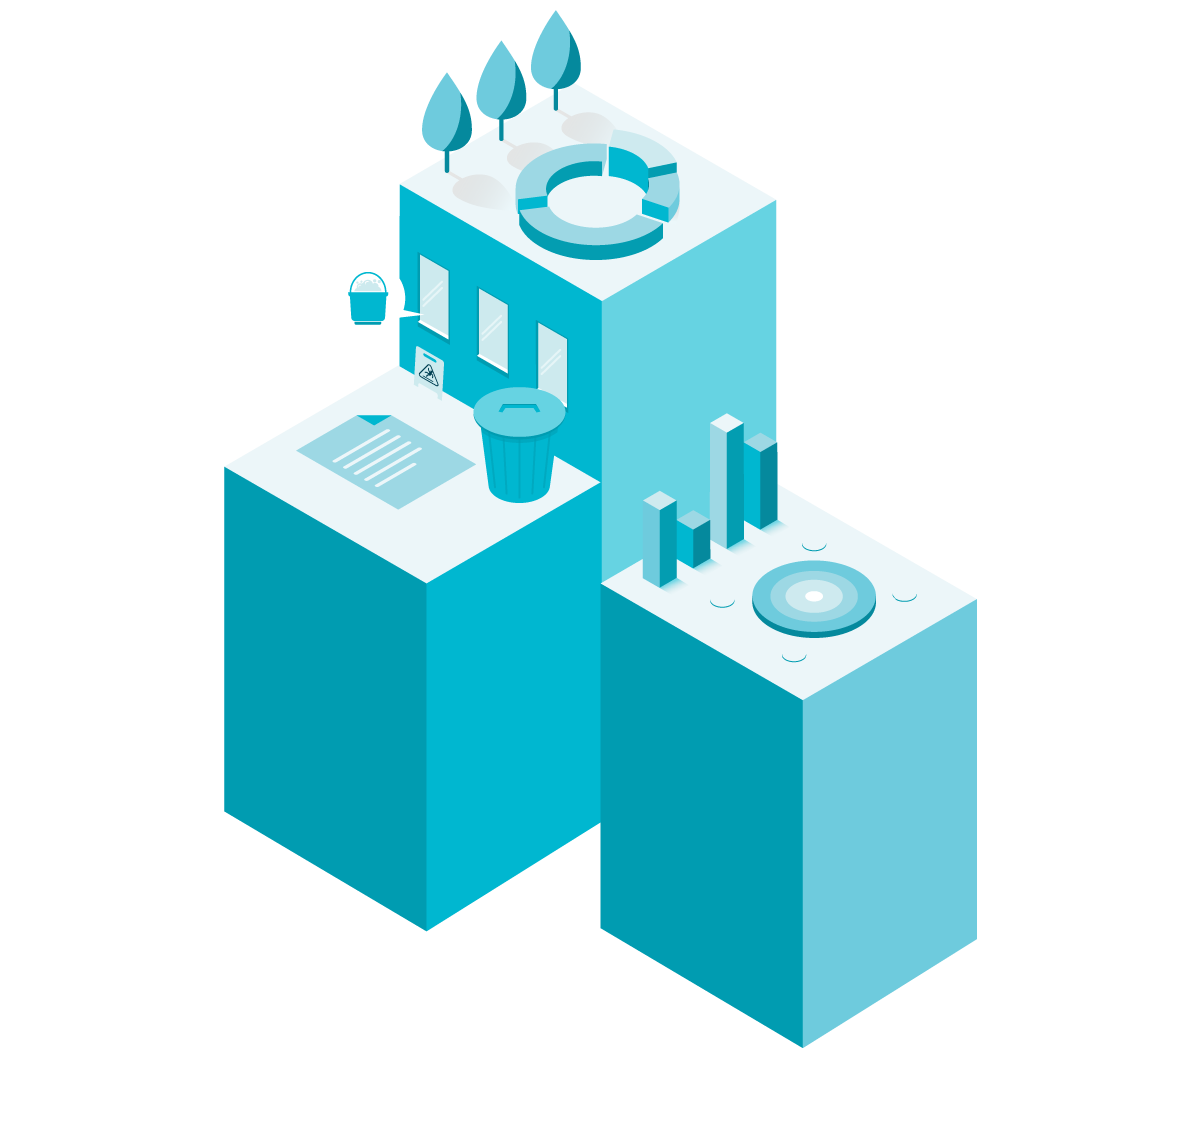 cleaning proposal icon